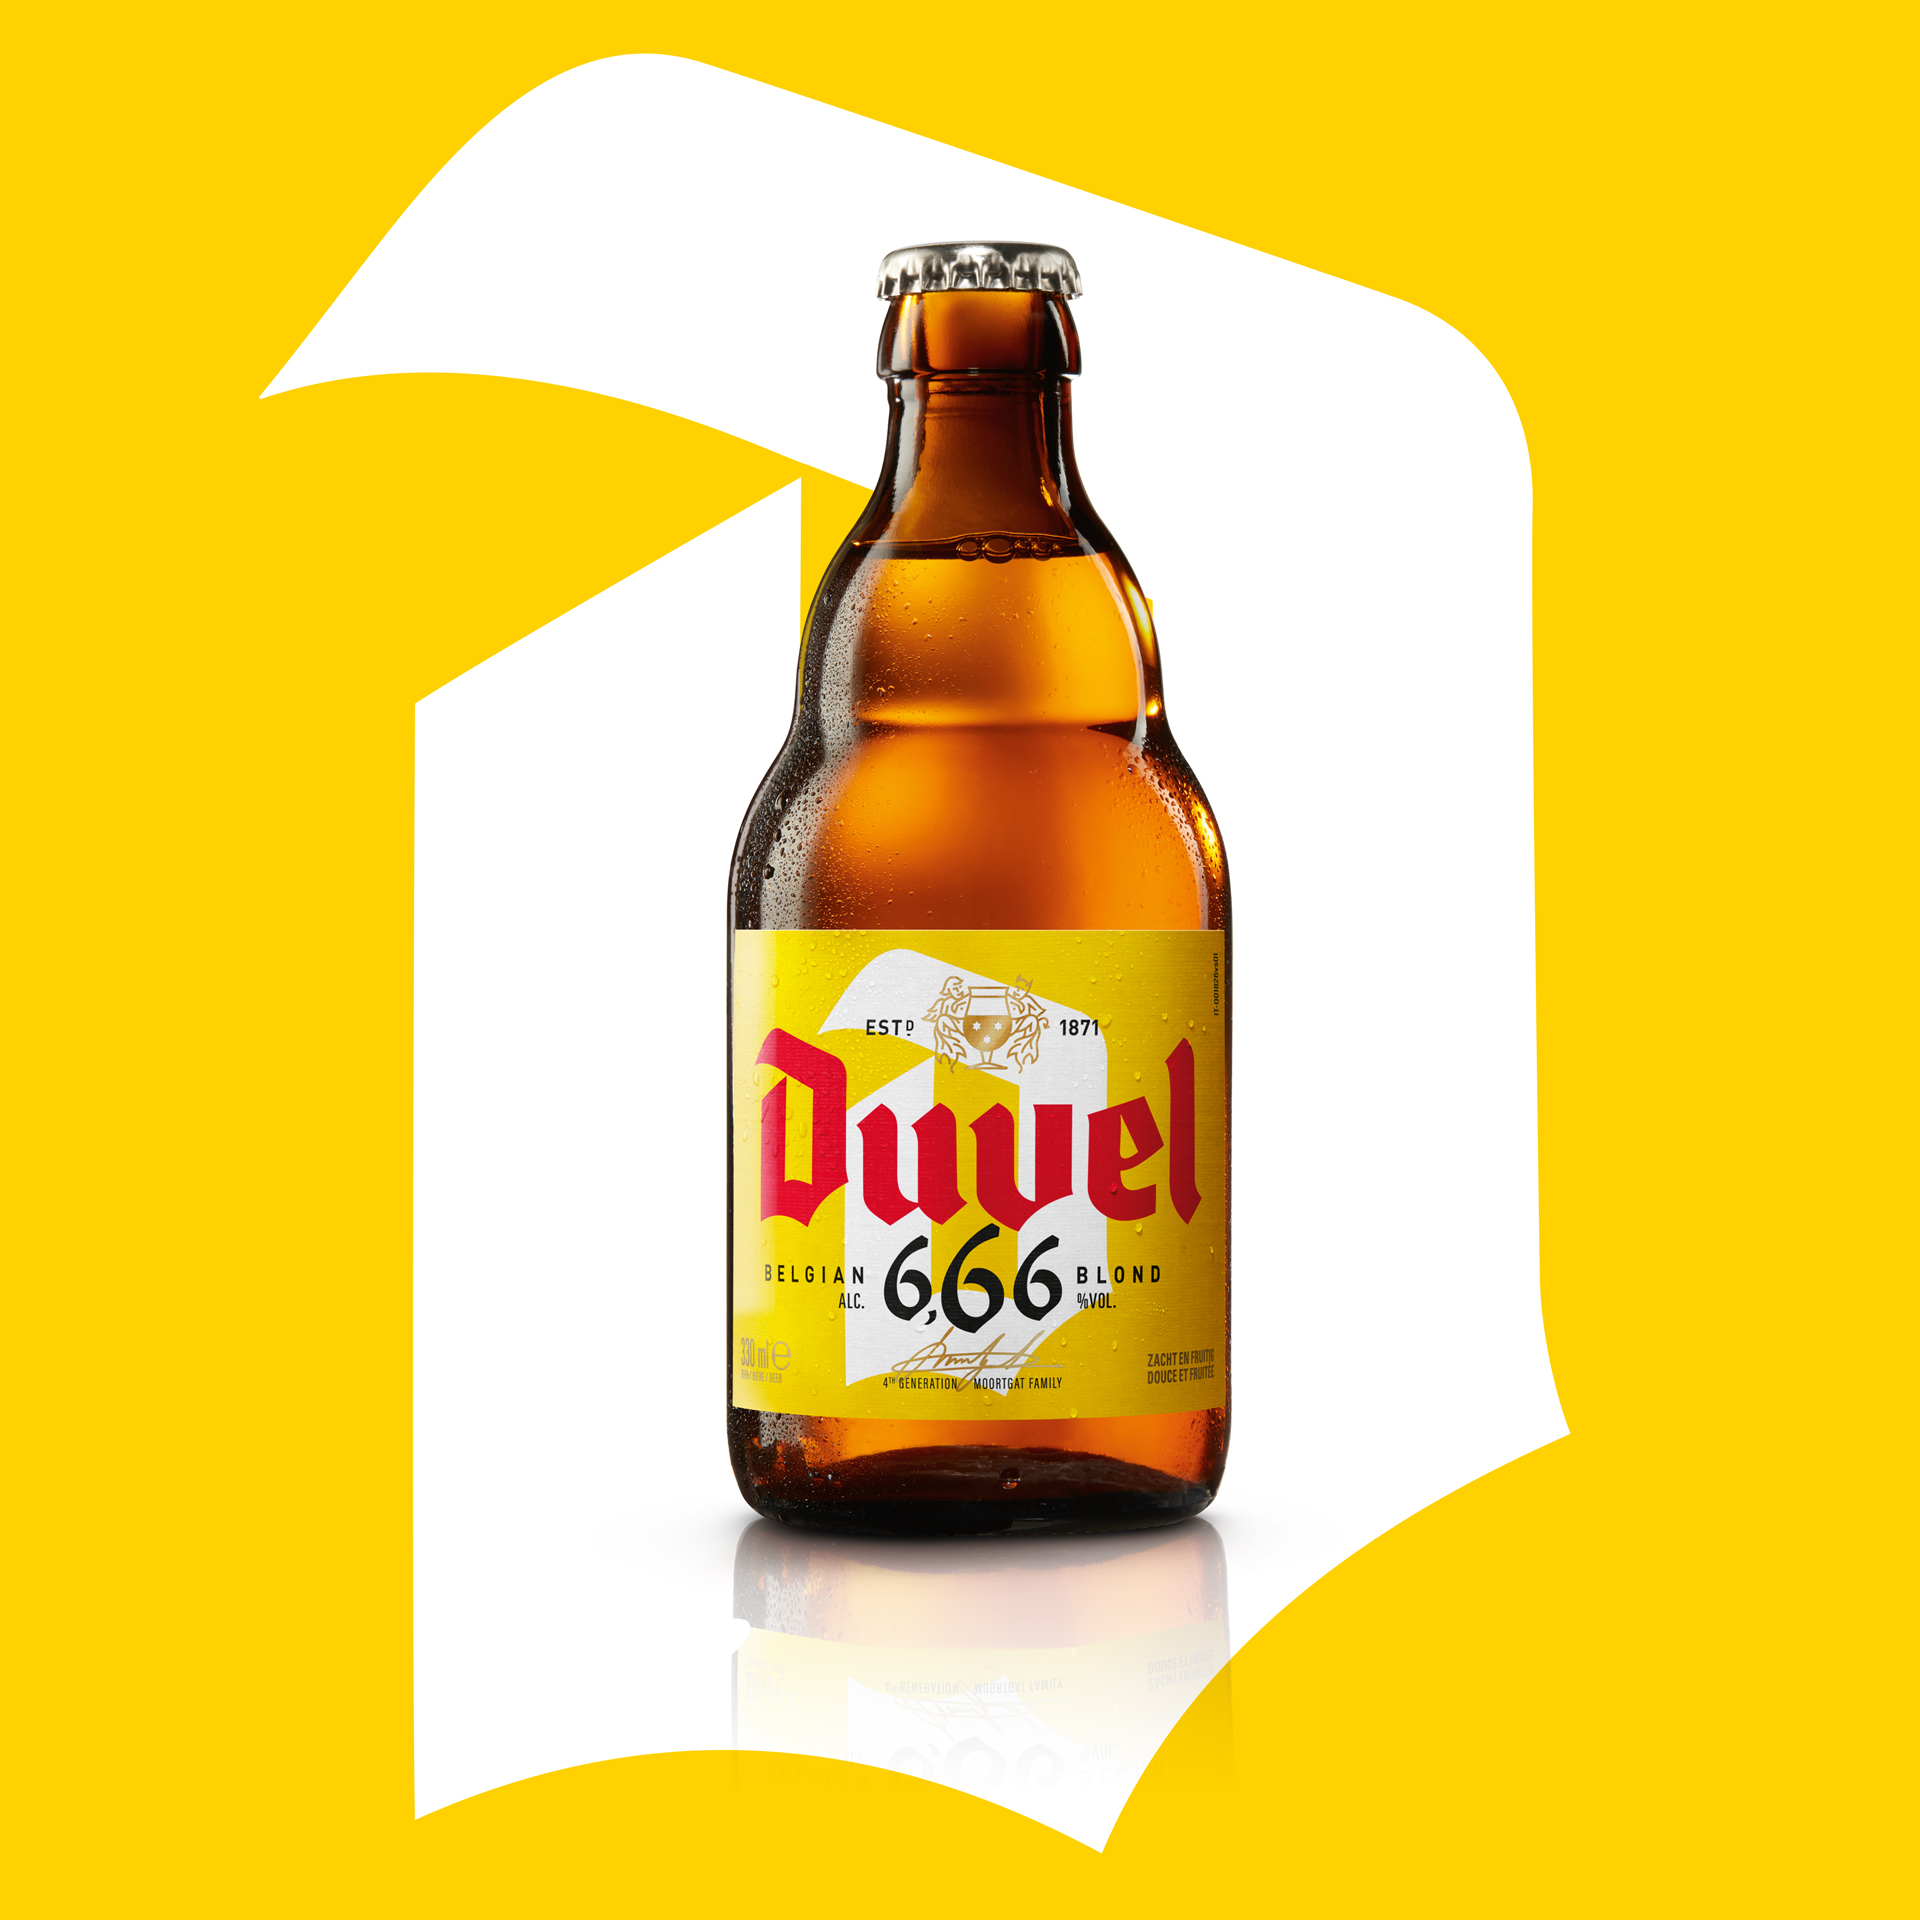 Quatre Mains Creates 666 Good Reasons for Duvel